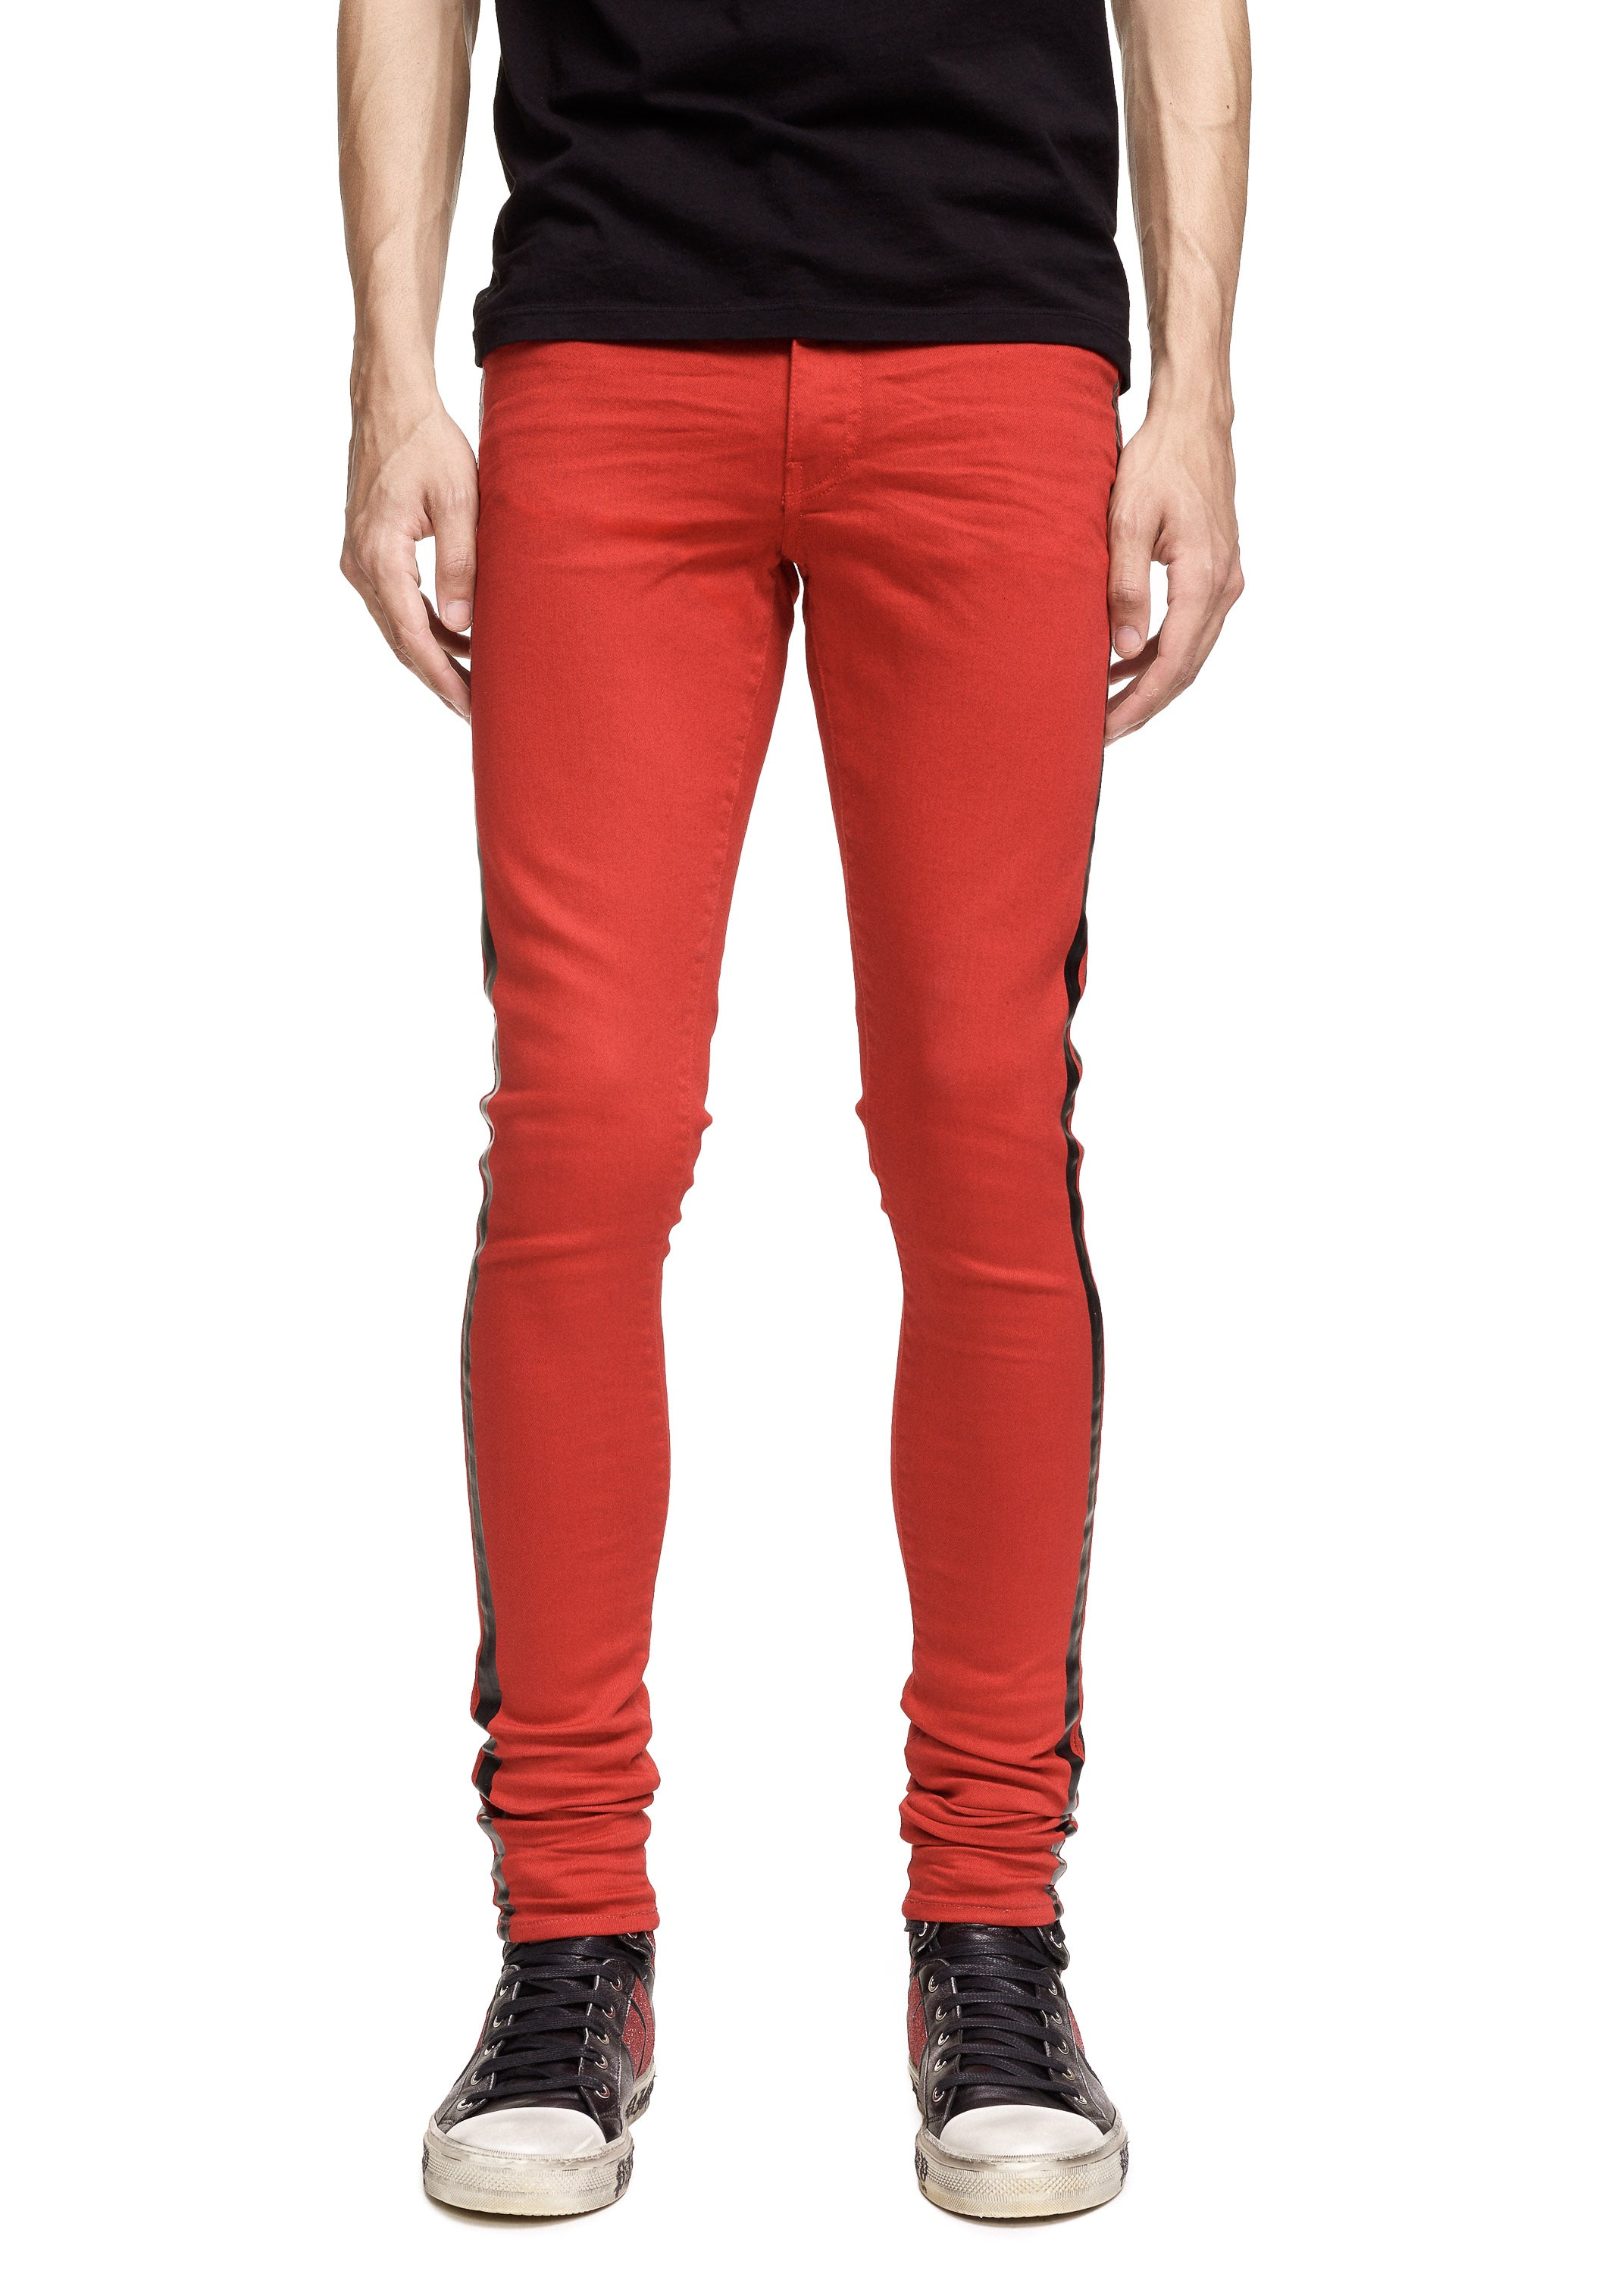 stack-track-jean-red-black-image-1